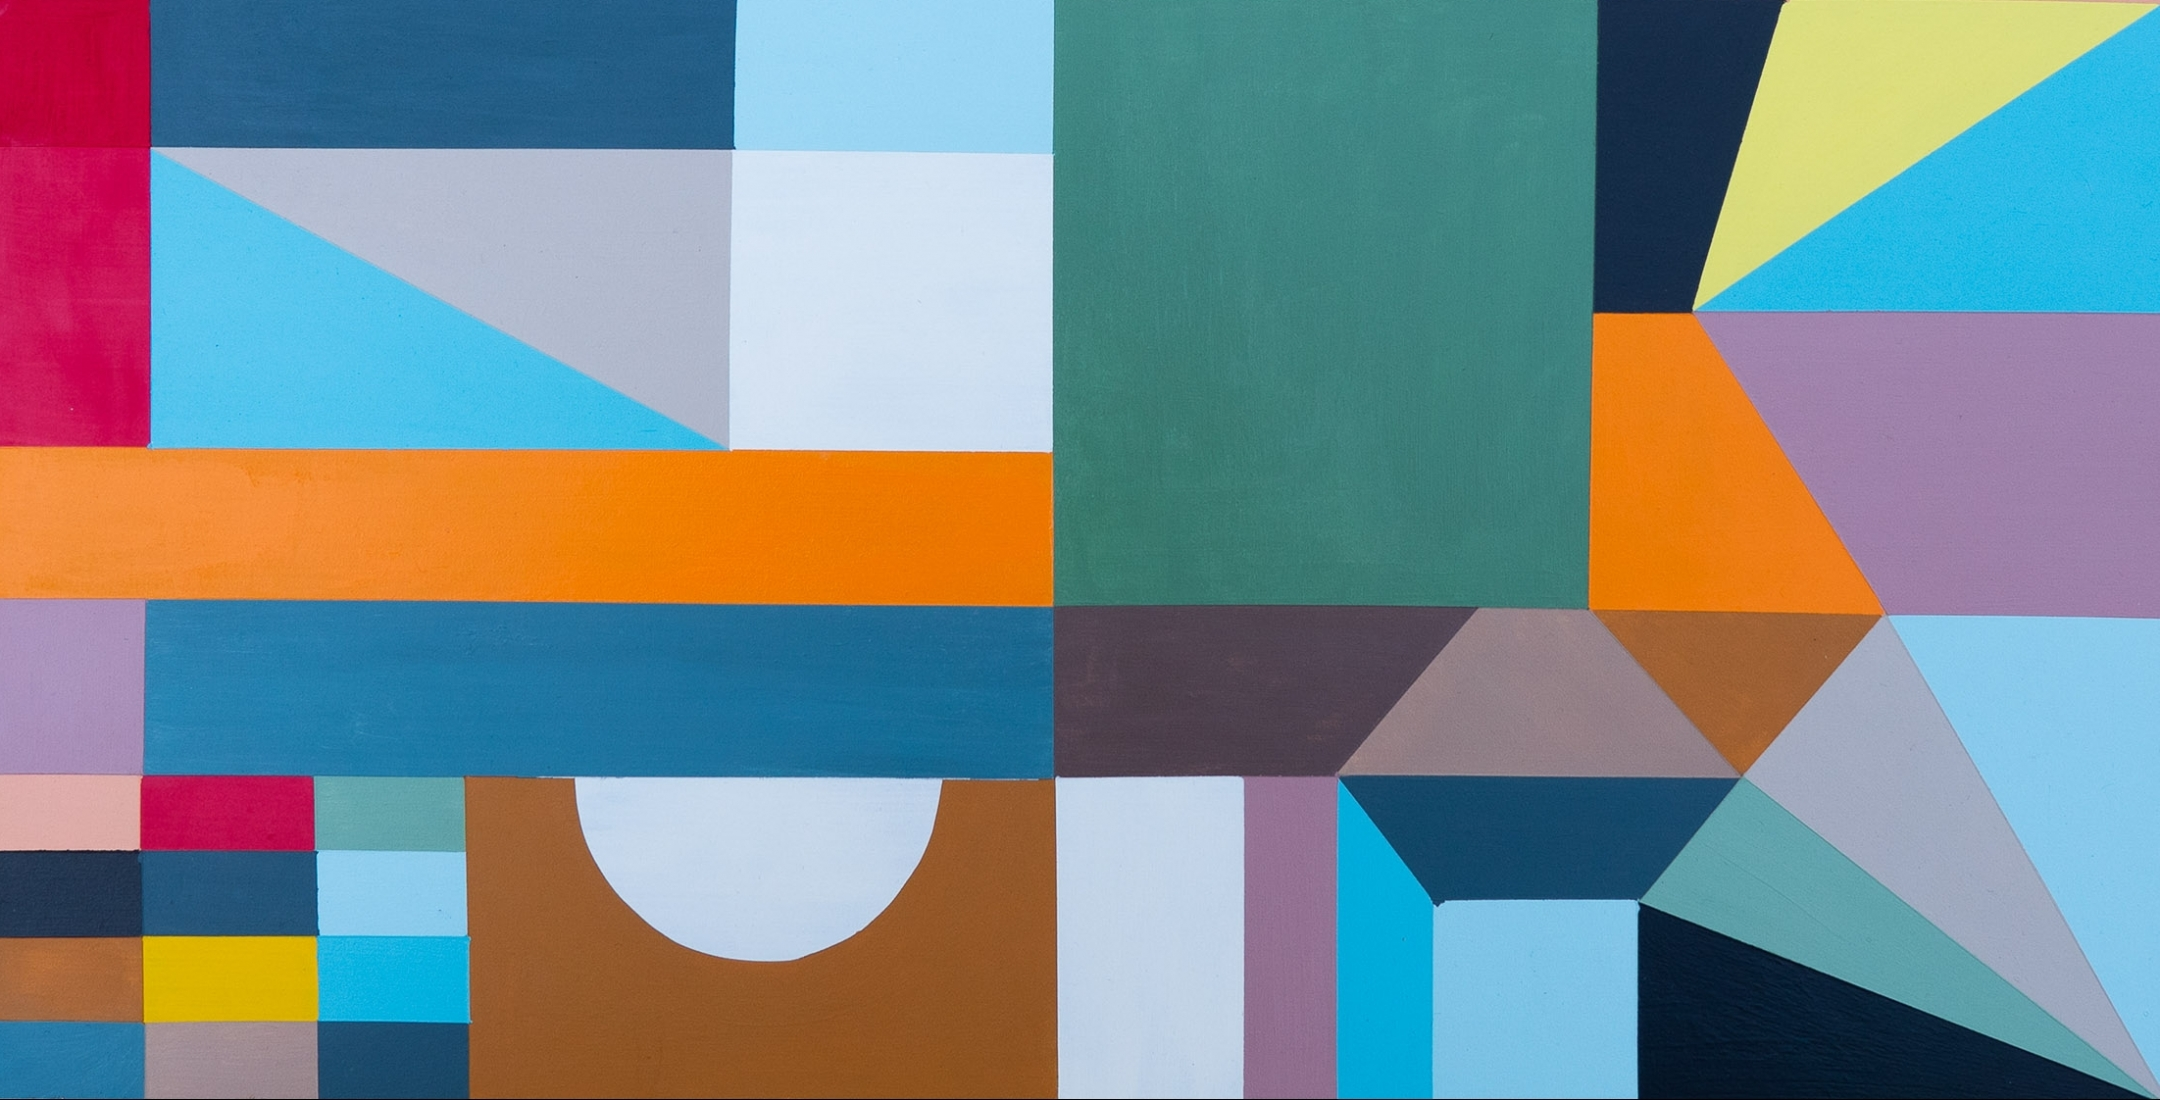 Greg Hodgson abstract geometric artwork from the exhibition Everything In Its Right Place